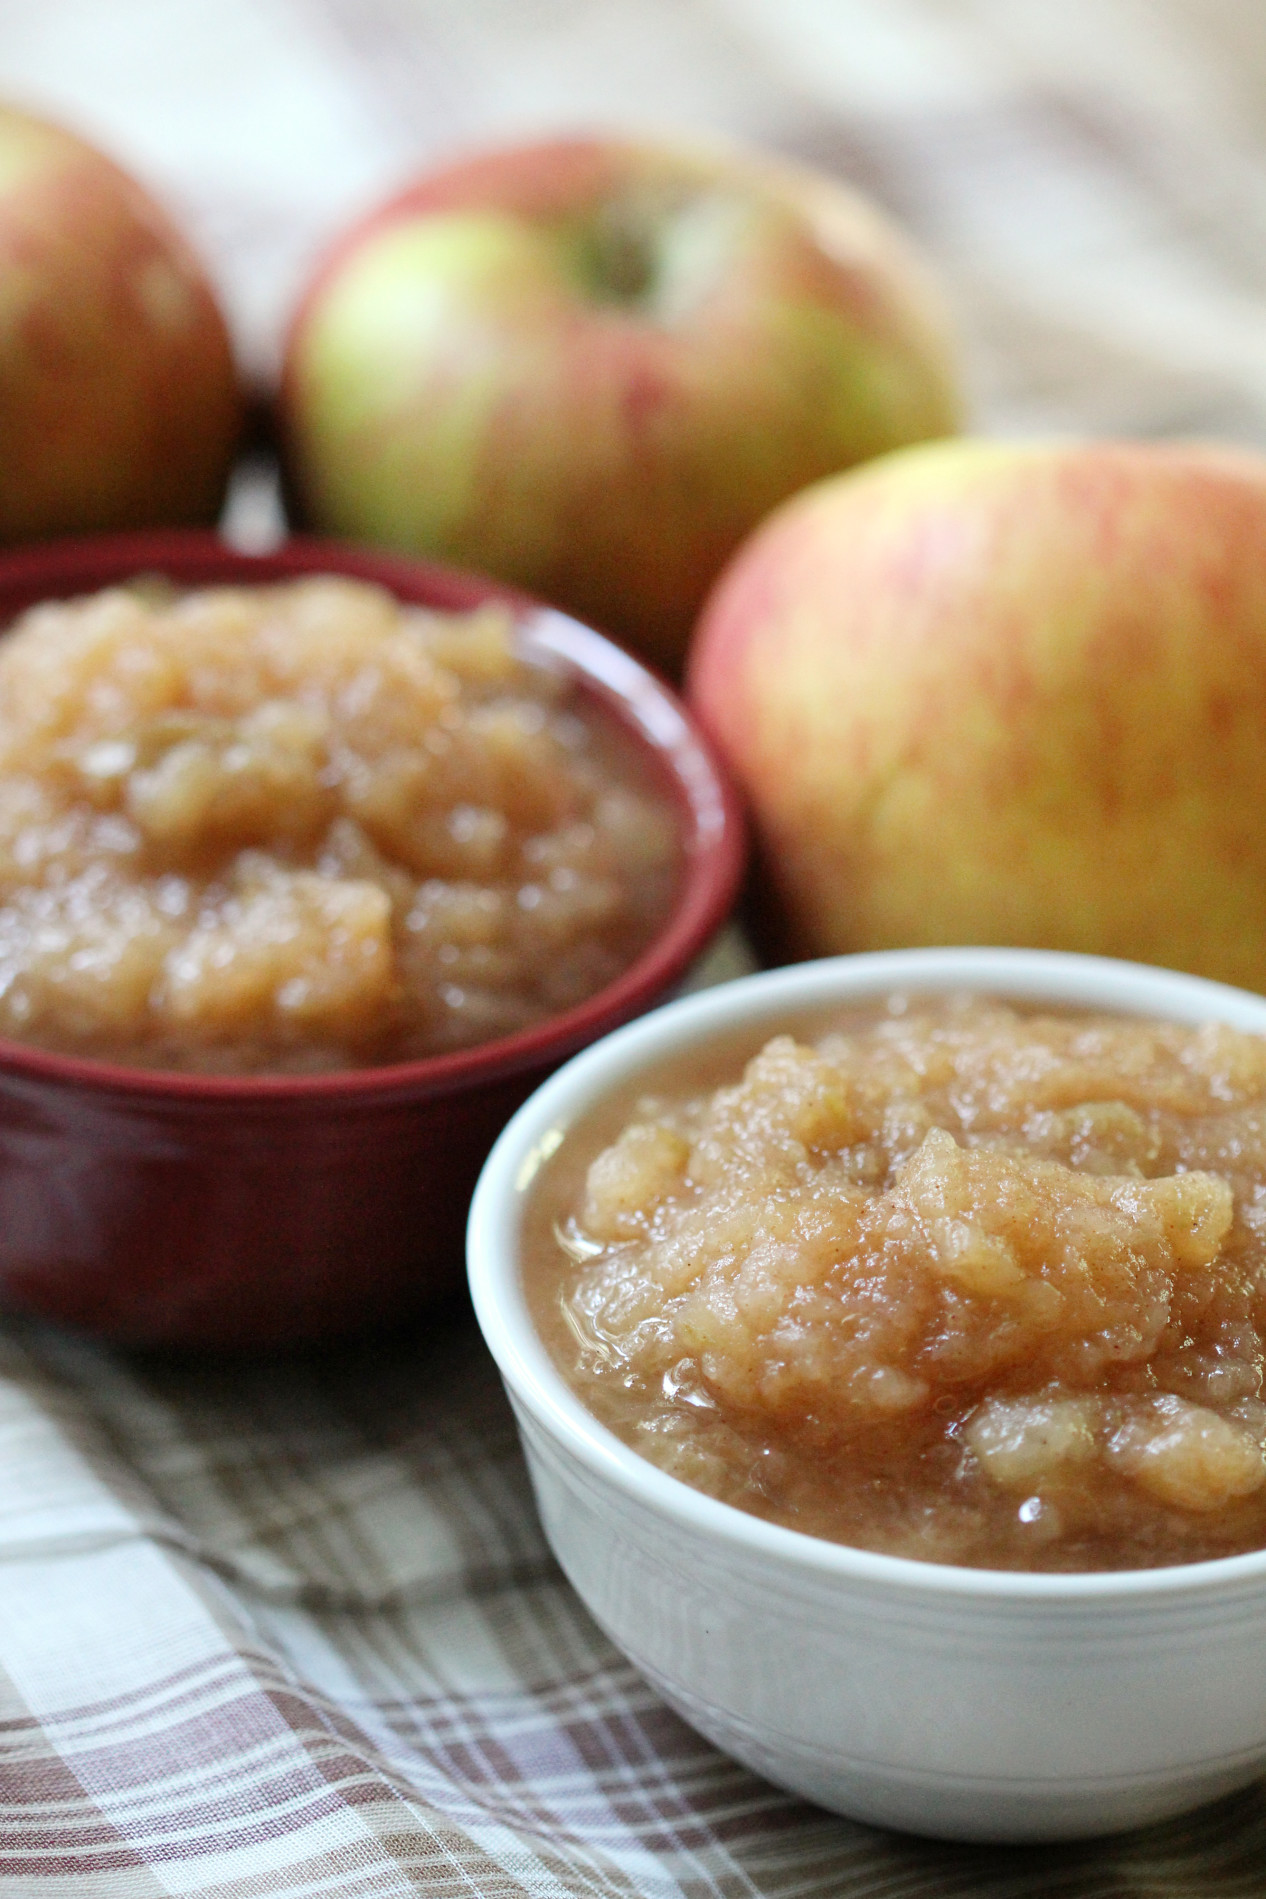 Slow Cooker Applesauce | Strength and Sunshine @RebeccaGF666 Nothing smells more like autumn comfort than apples simmering in the slow cooker! Easy homemade slow cooker applesauce with none of the work, hassles, or added sugar. Add some cinnamon and spice or keep it plain; the final product is up to you but will always be delicious! The perfect gluten-free and vegan sweet snack!